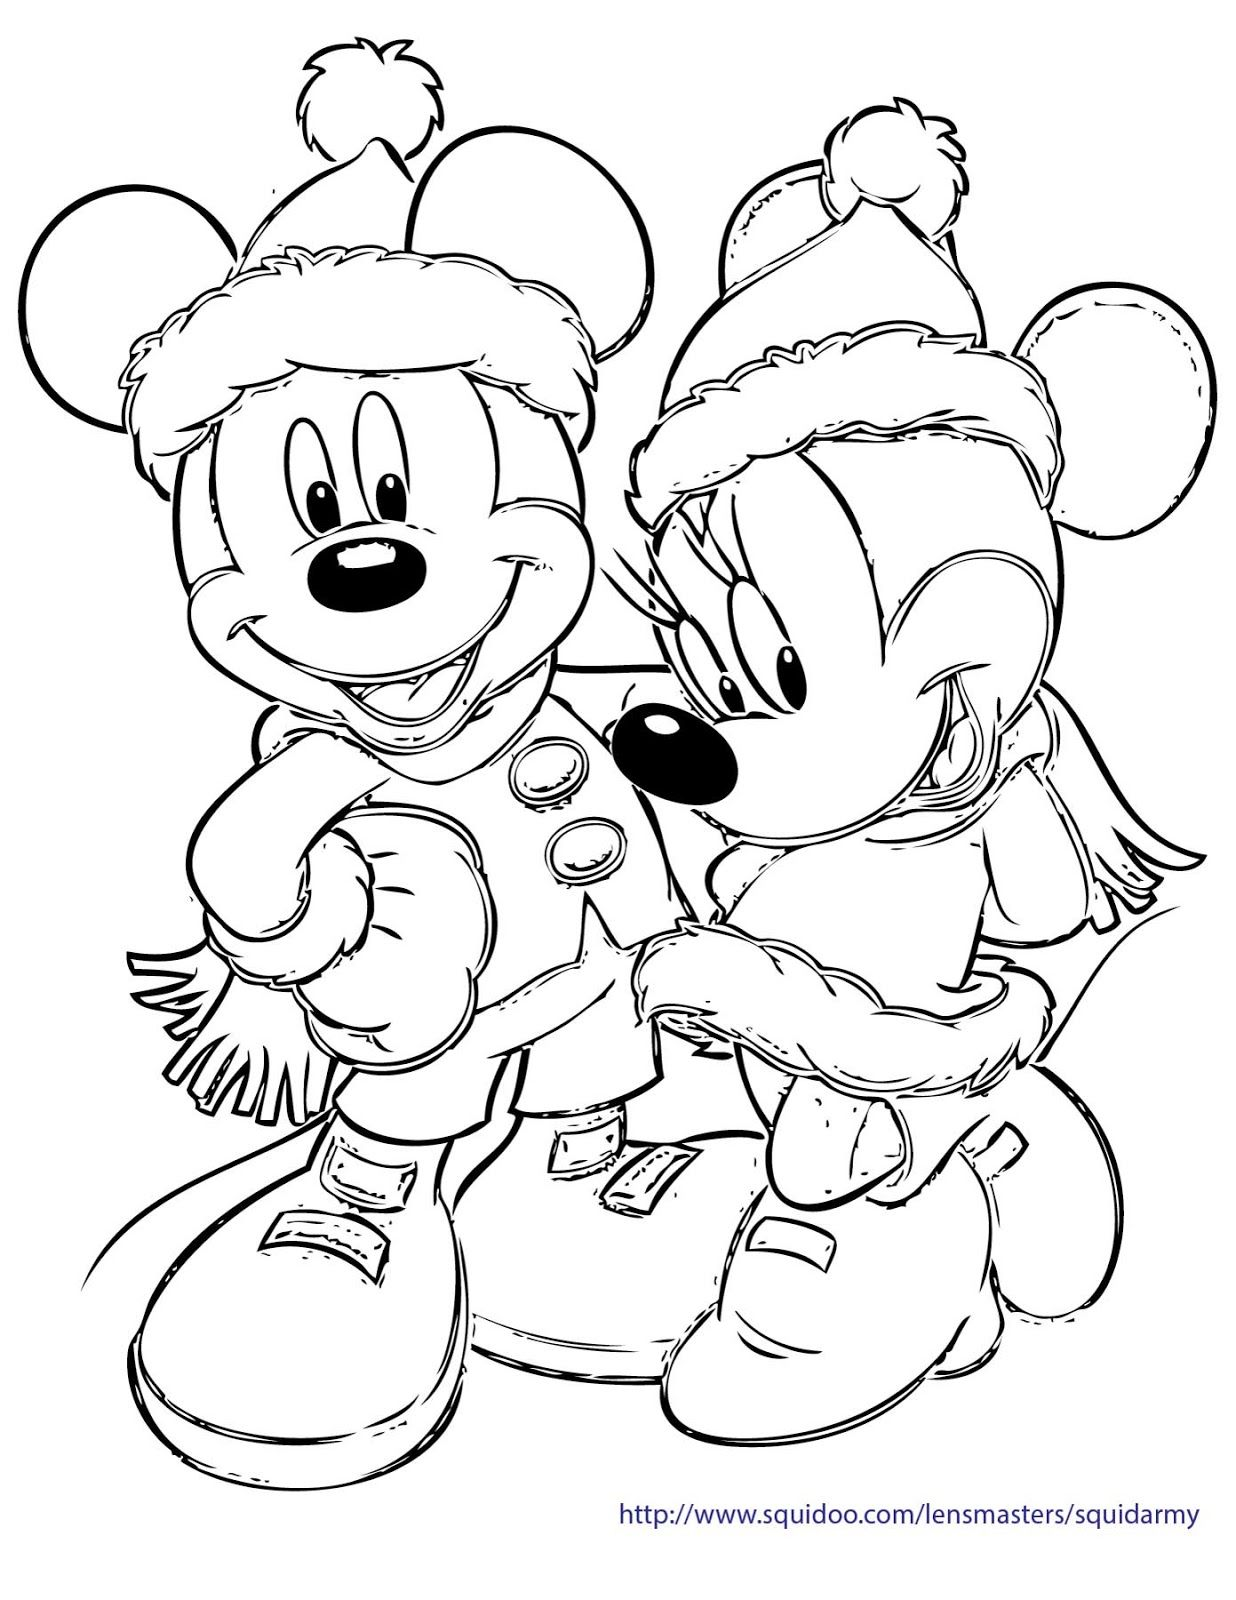 Ausmalbilder Gratis Nikolaus : Disney Characters Christmas Coloring Pages Disney Svg Pinterest